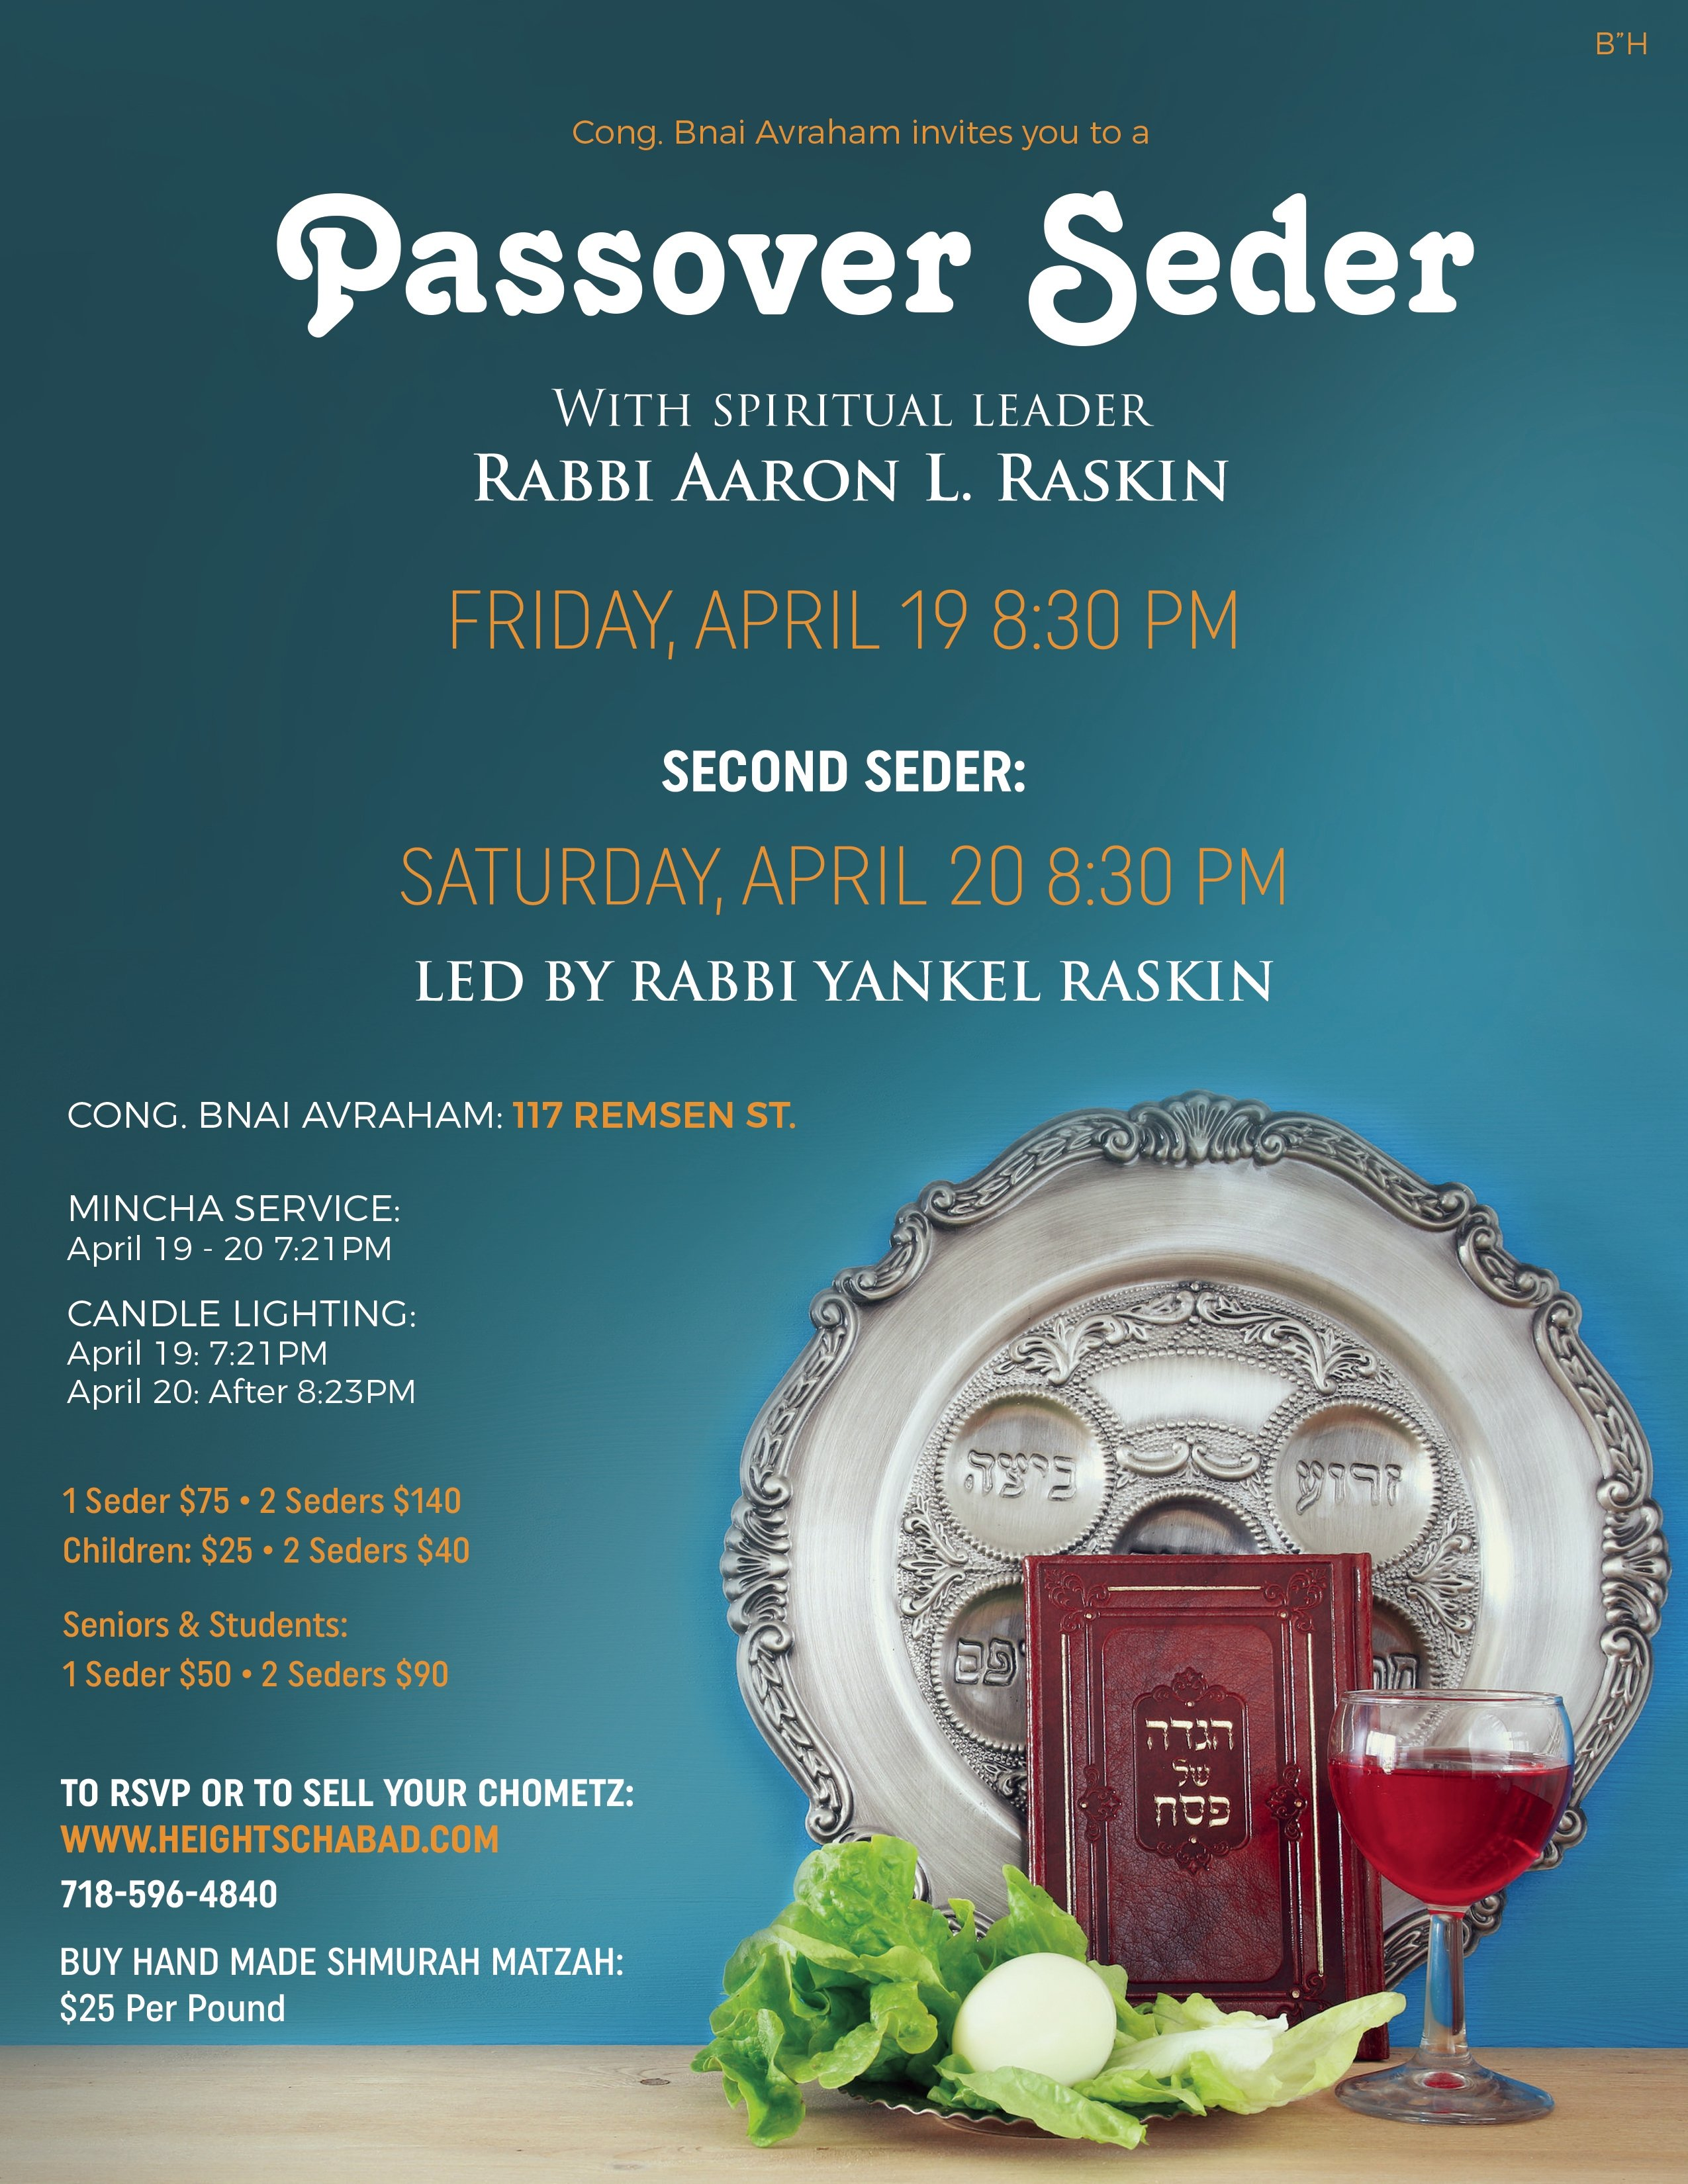 Passover 2019 with Chabad - Chabad of Brooklyn Heights